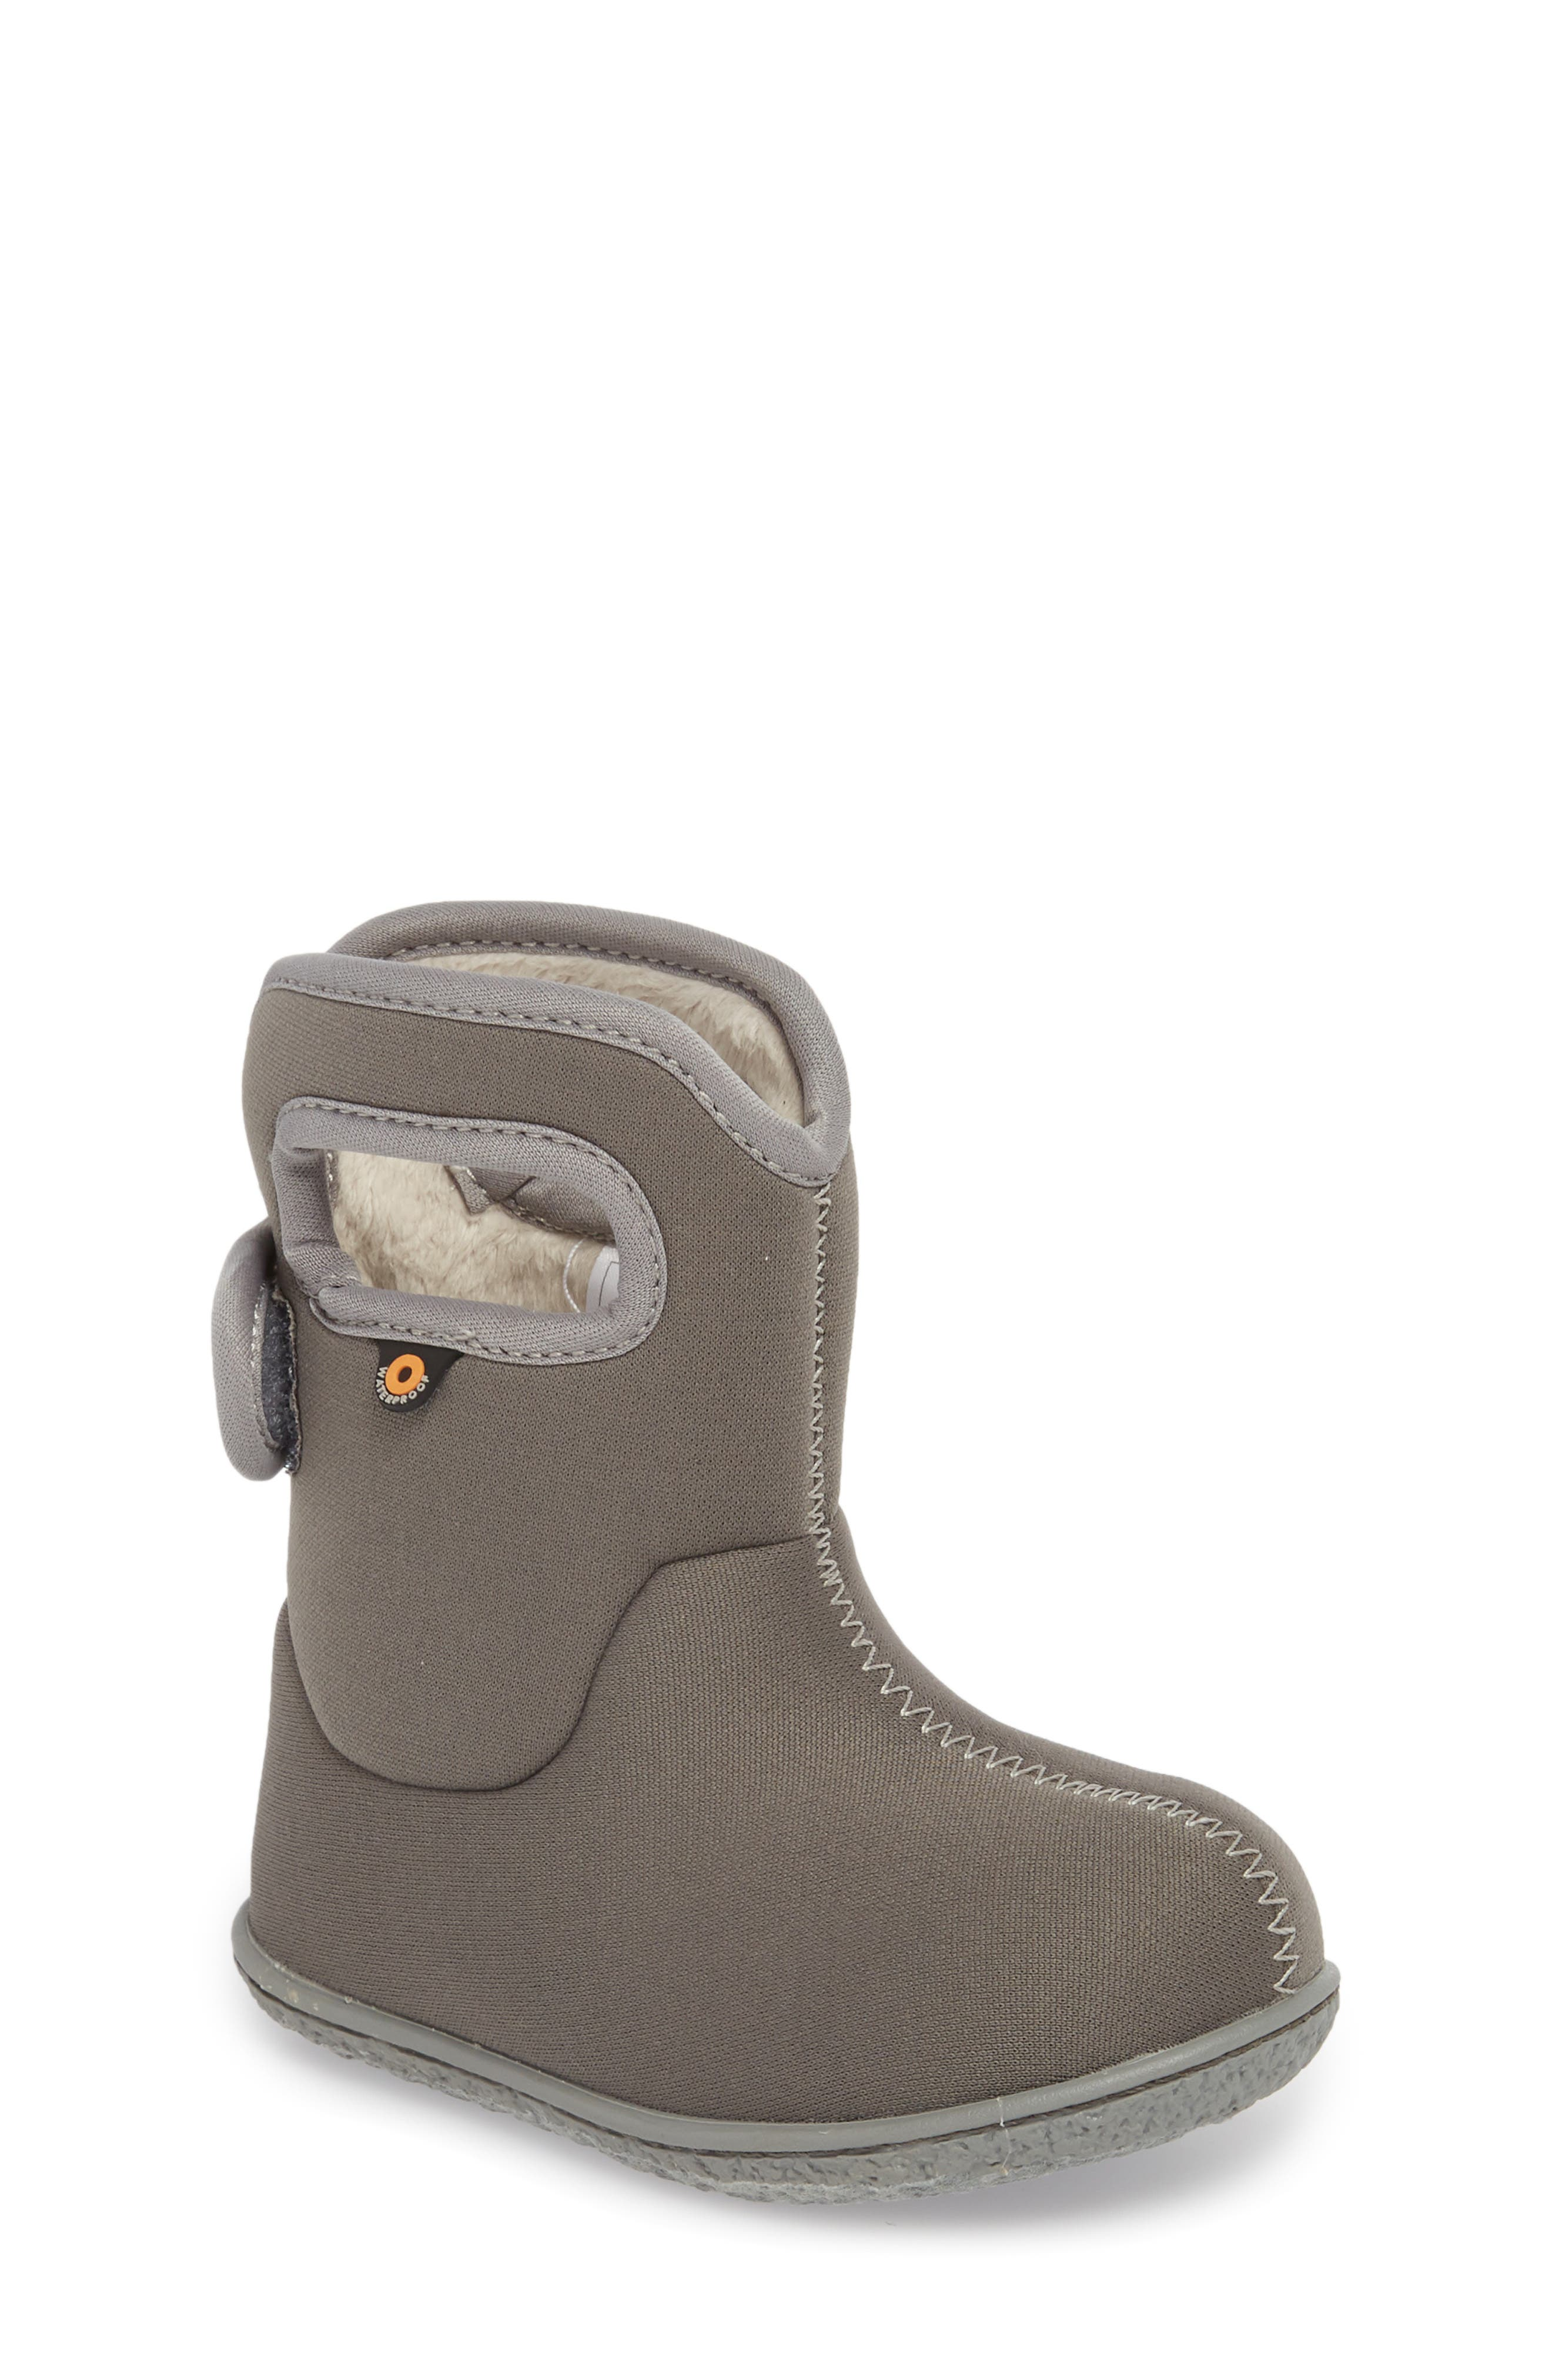 Classic Solid Insulated Waterproof Rain Boot,                         Main,                         color, Light Gray Multi